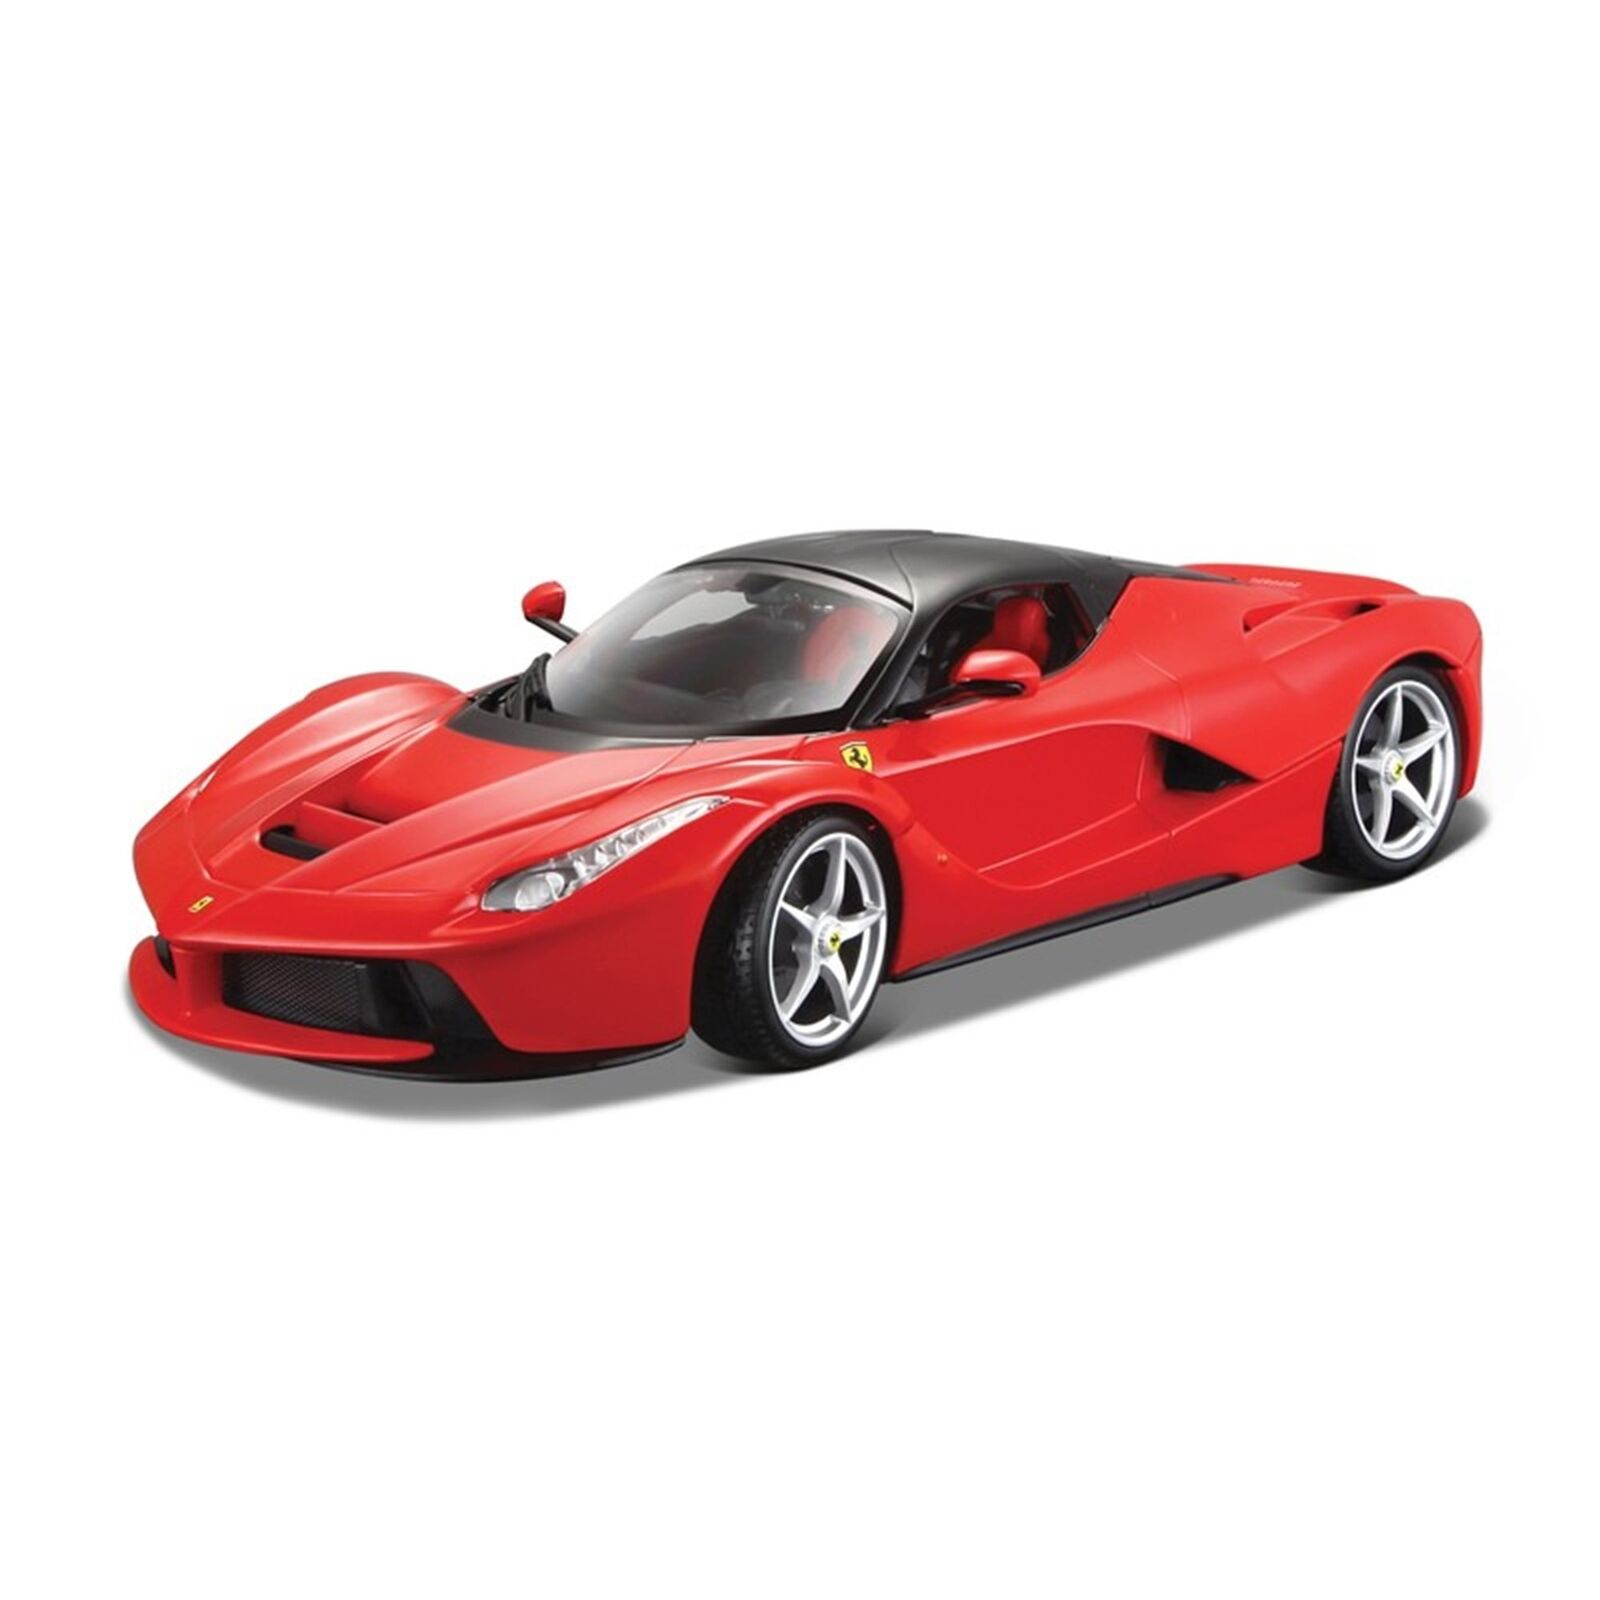 LaFerrari 1 18 Scale Diecast Car Vehicle Bburago Collectors Toy Gift Novelty